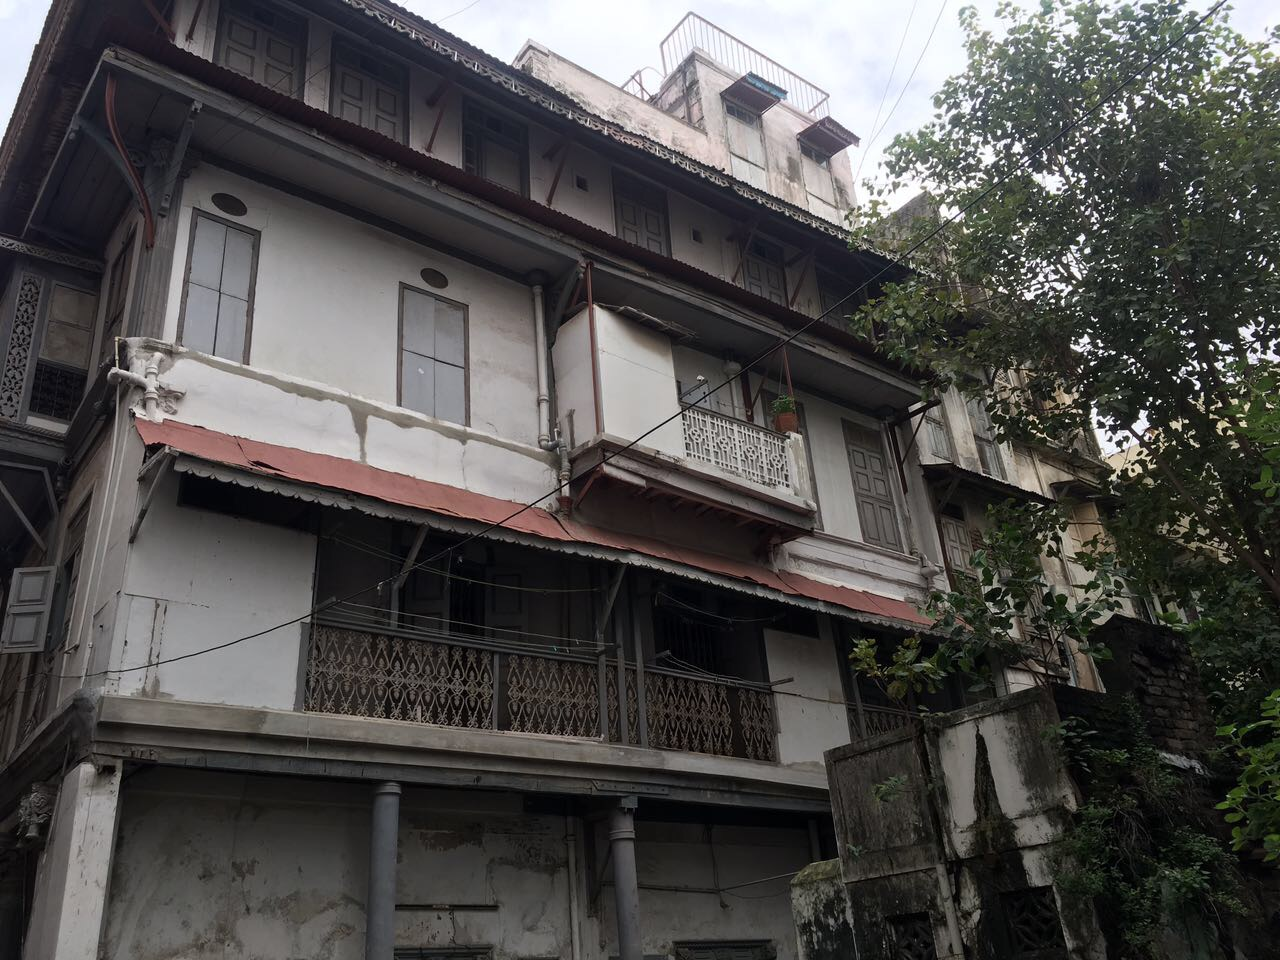 Kitchen Gallery Surat Gujarat: The Architecture Of Houses In The Motipol Locality, Old